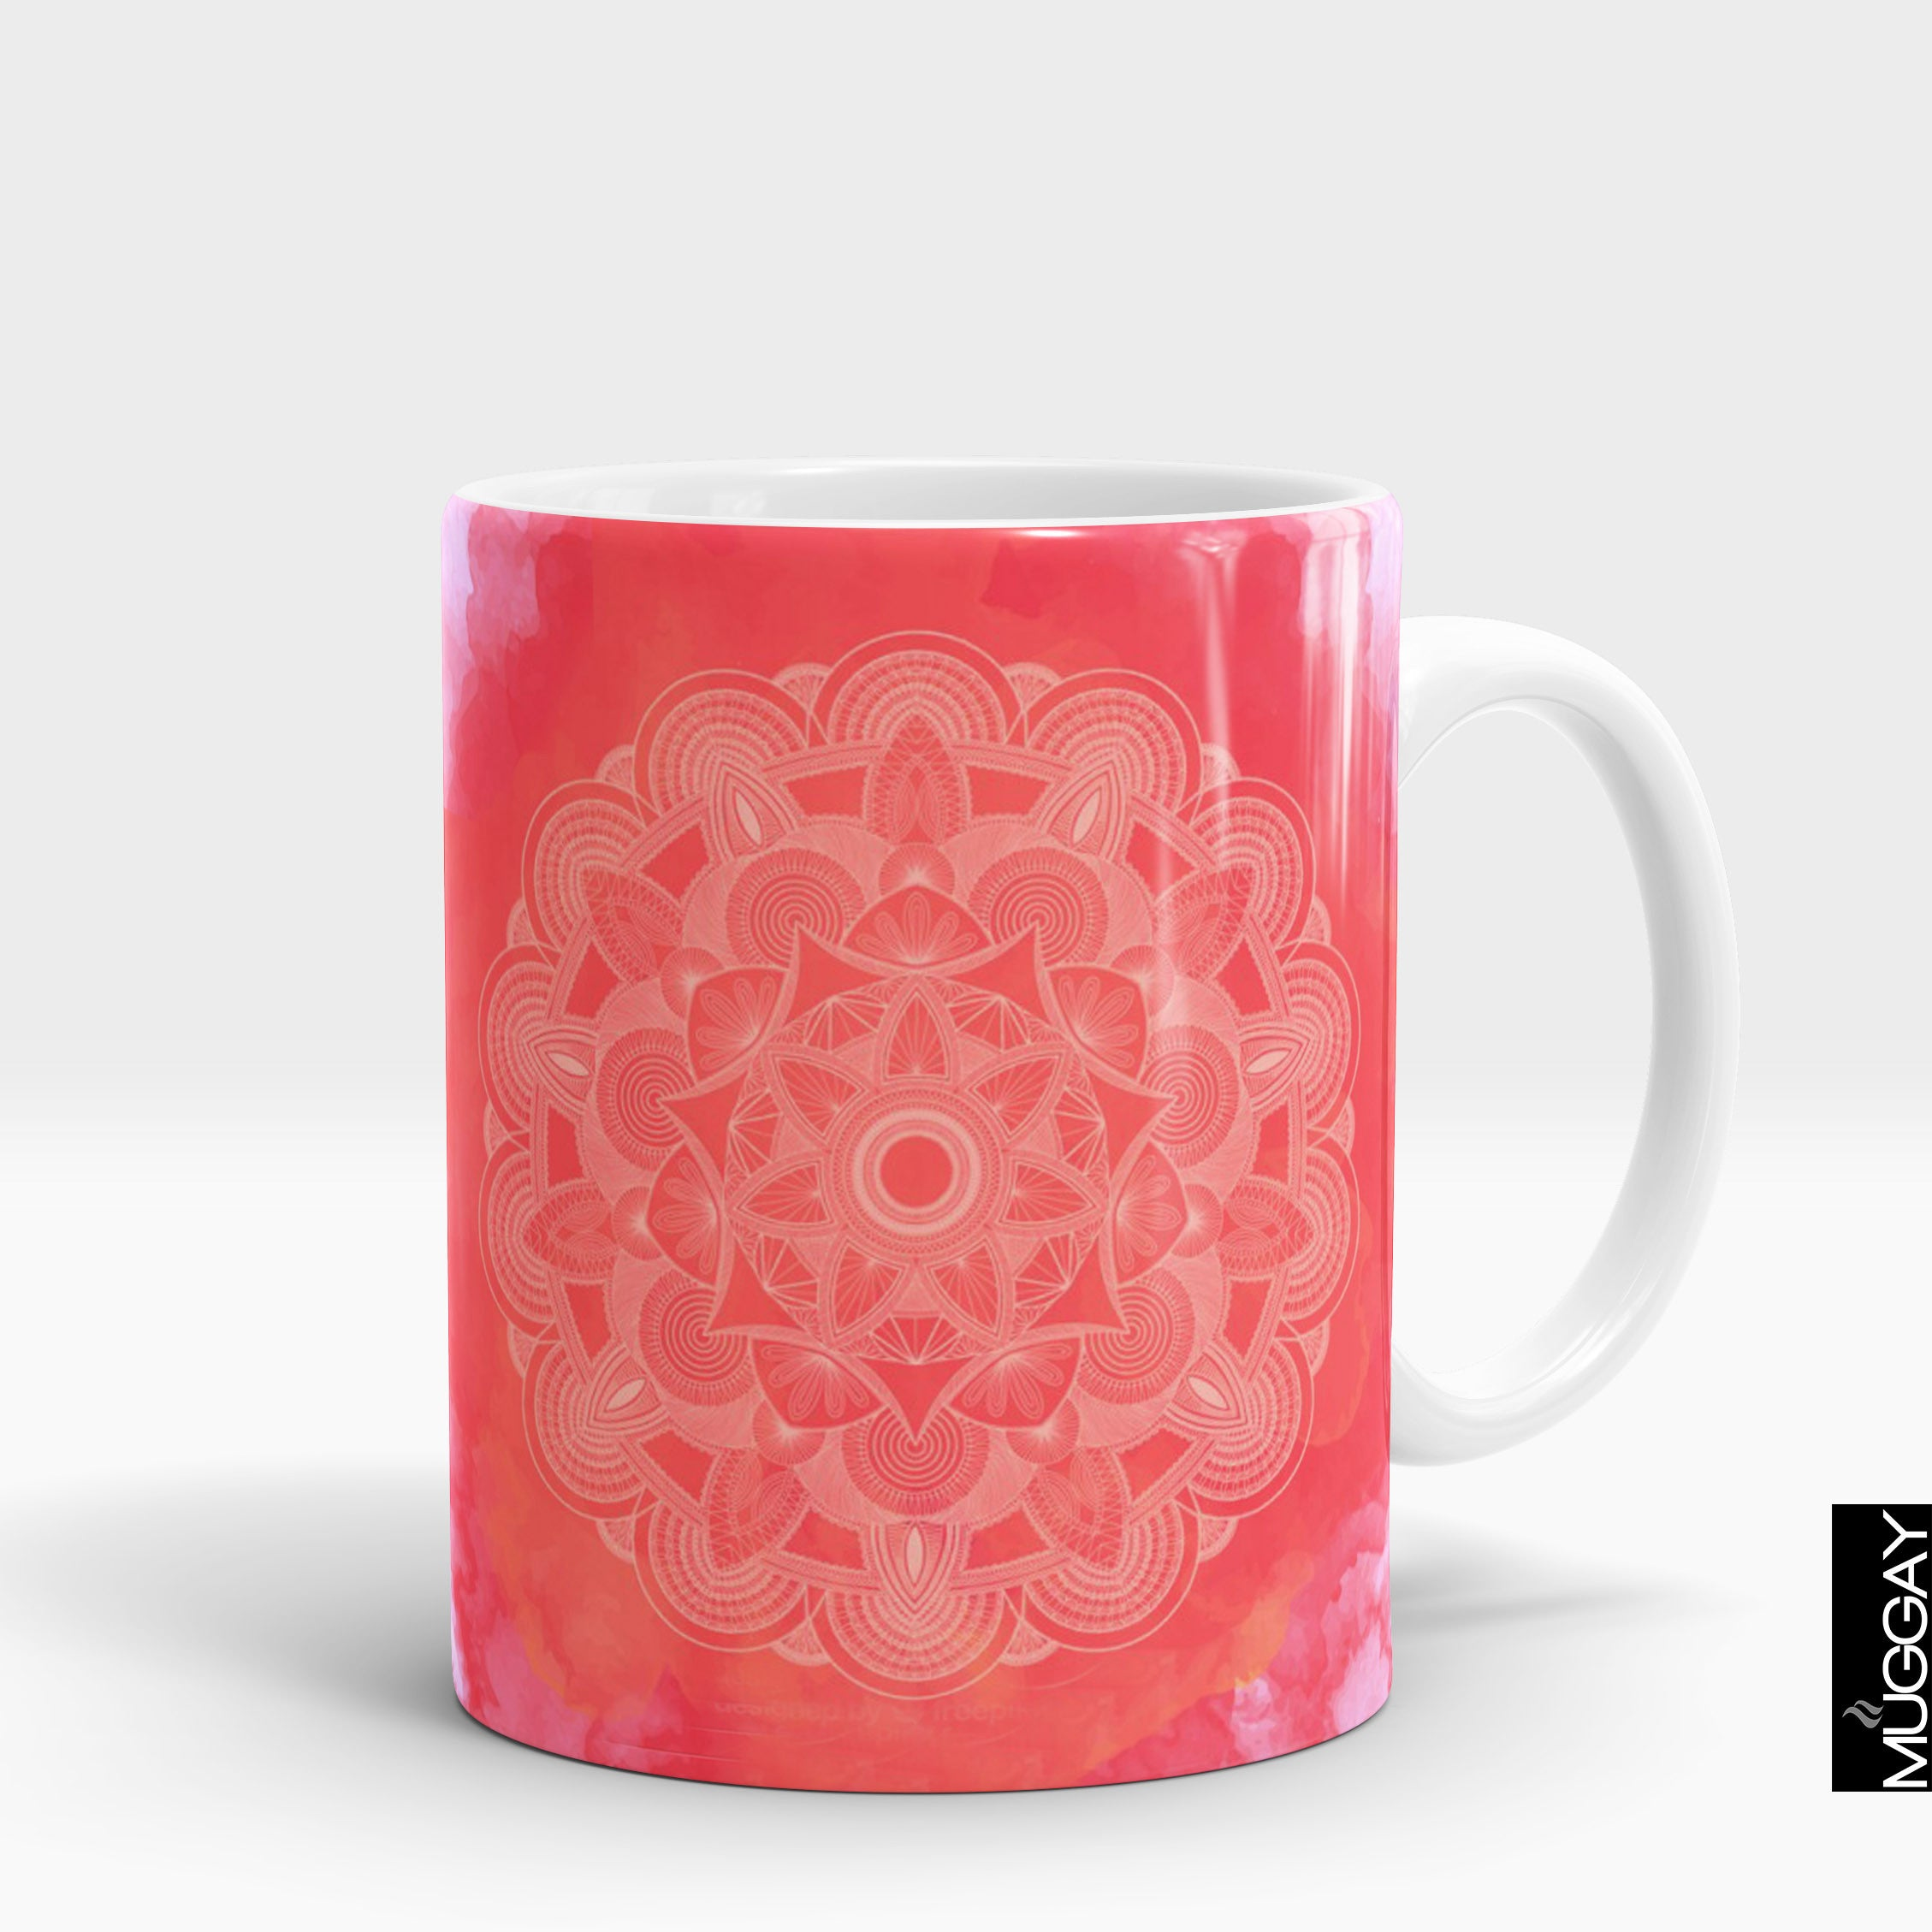 Mandala art mugs -8